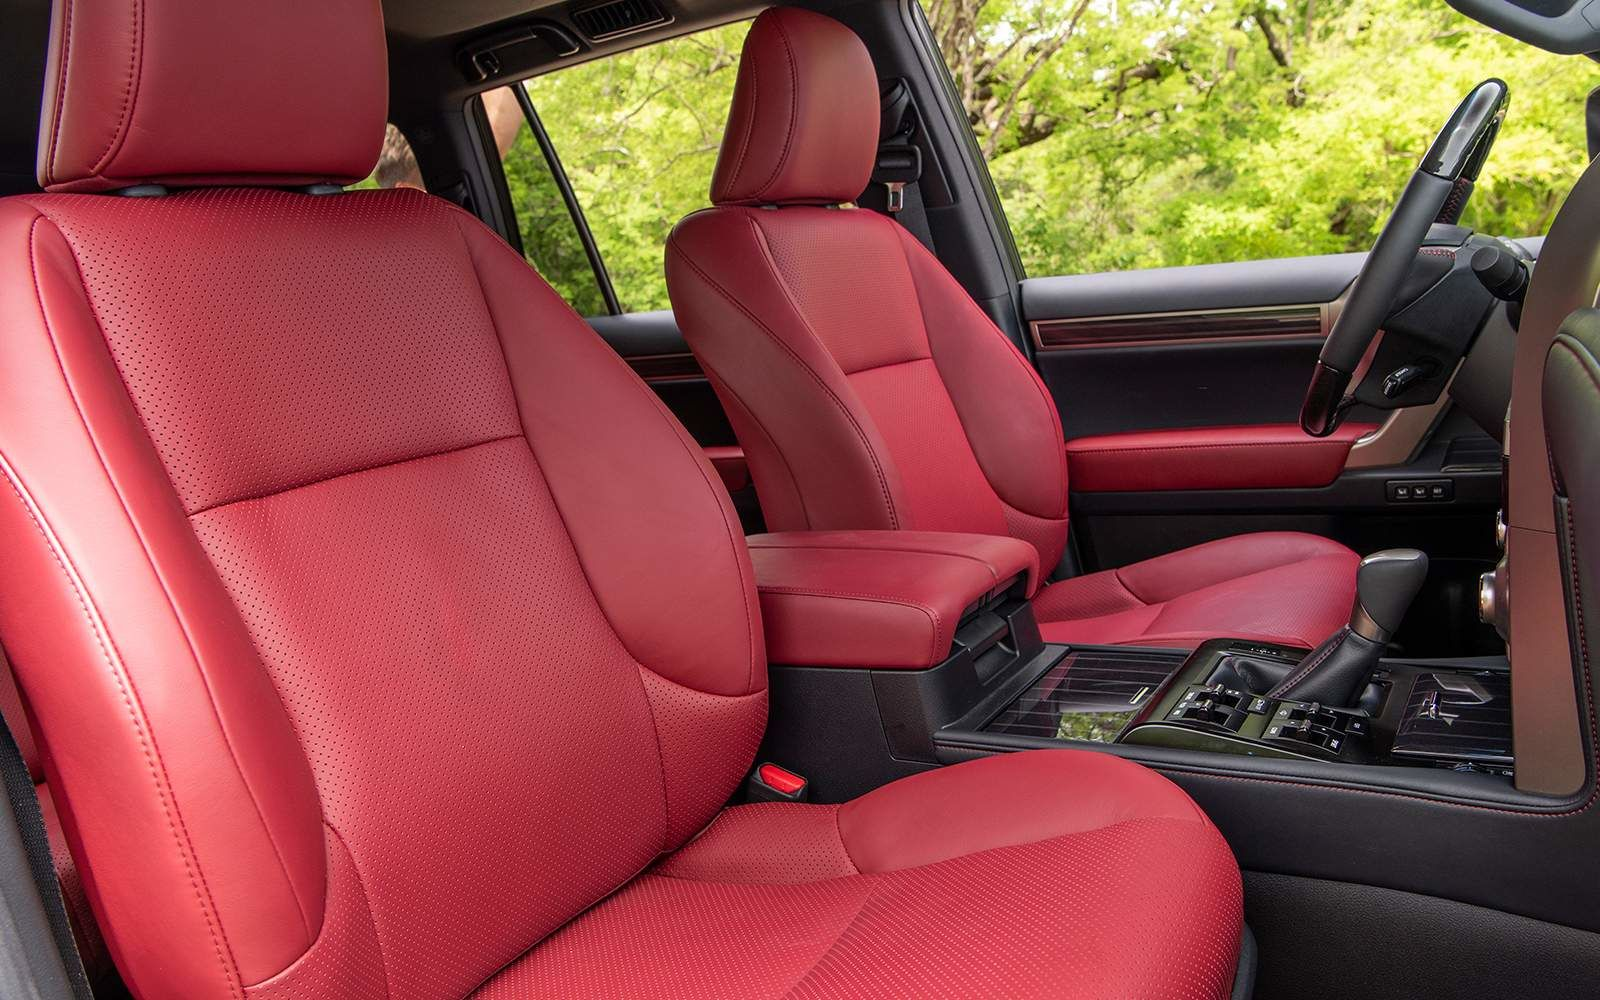 Lexus 2020 Gx 460 Interior Roja Red Premium Leather L